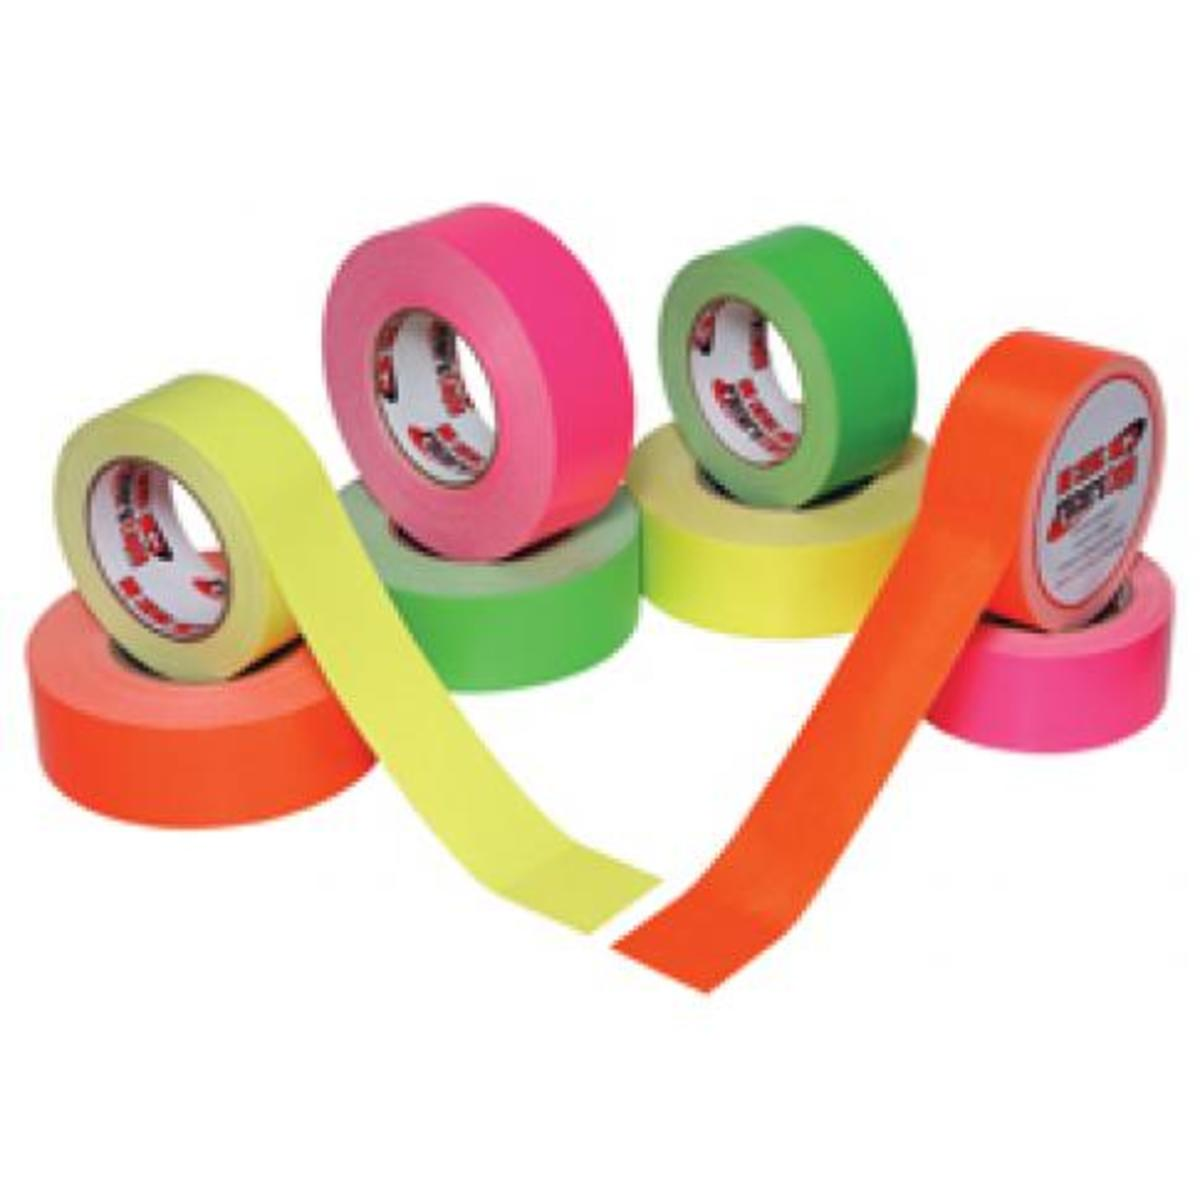 Neon Duct tape is availlable in numerous bright colors.